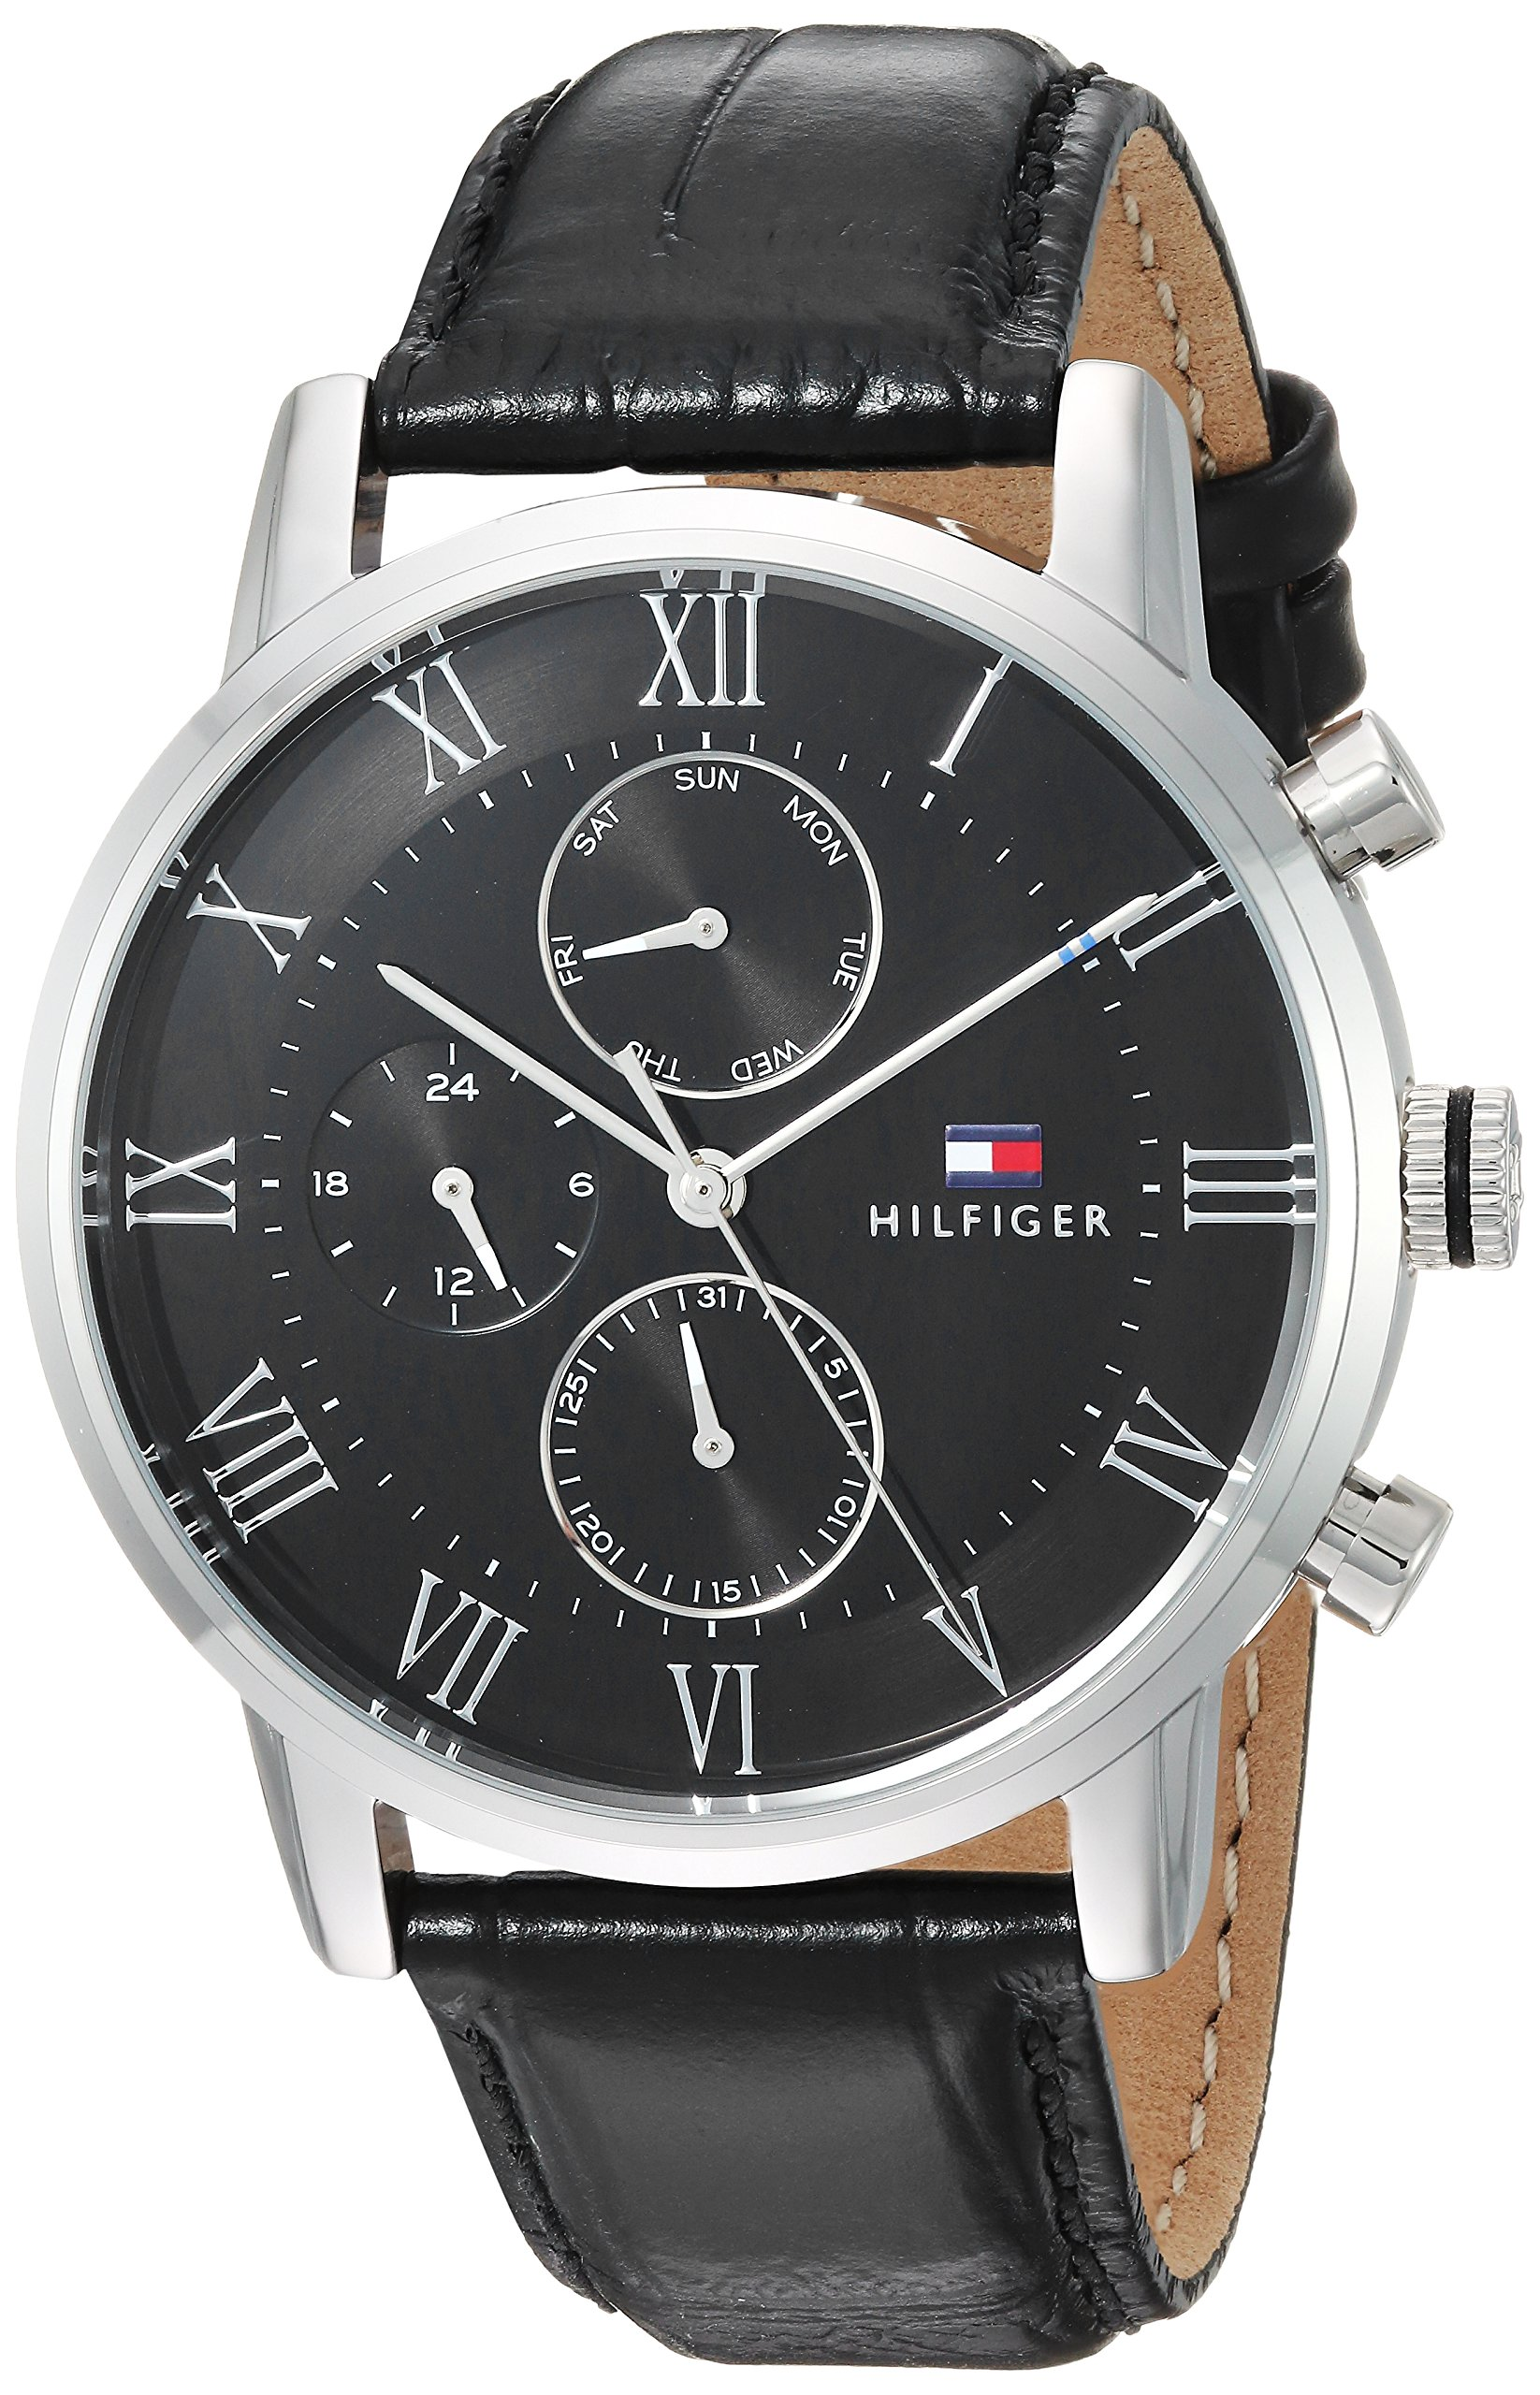 Tommy Hilfiger Men's 'SOPHISTICATED SPORT' Quartz Stainless Steel and Leather Casual Watch, Color:Black (Model: 1791401)